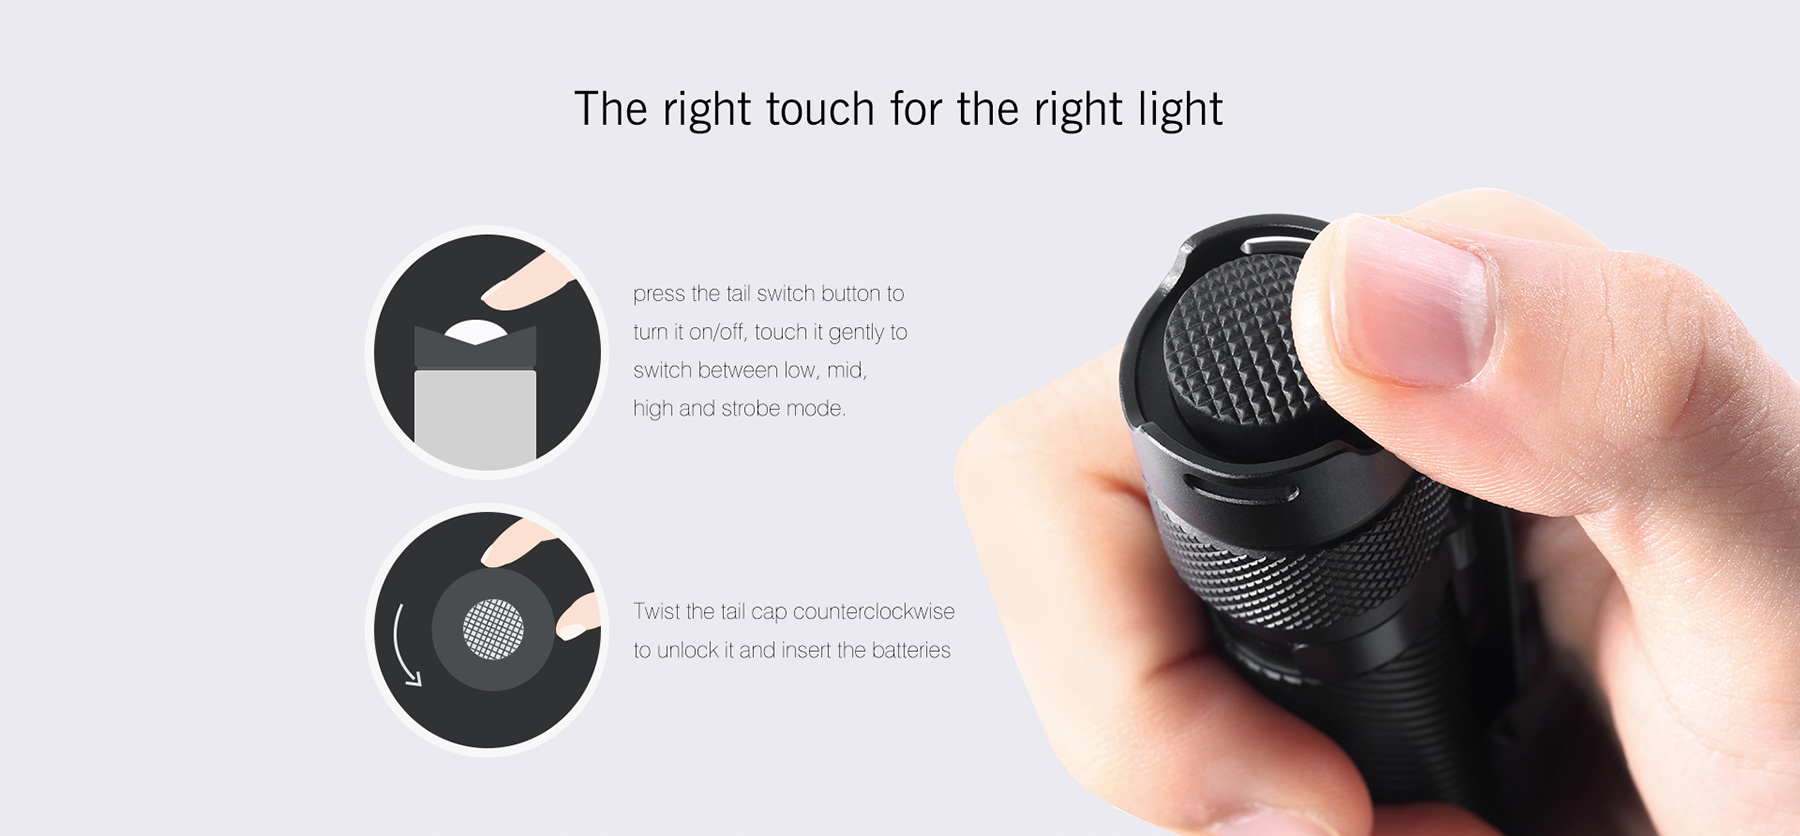 Zanflare F2 Led Flashlight 1099 Free Shipping Online Buy Wholesale Strobe Circuit From China Cree Xp G2 Water Resistant Compact Portable Black 6000